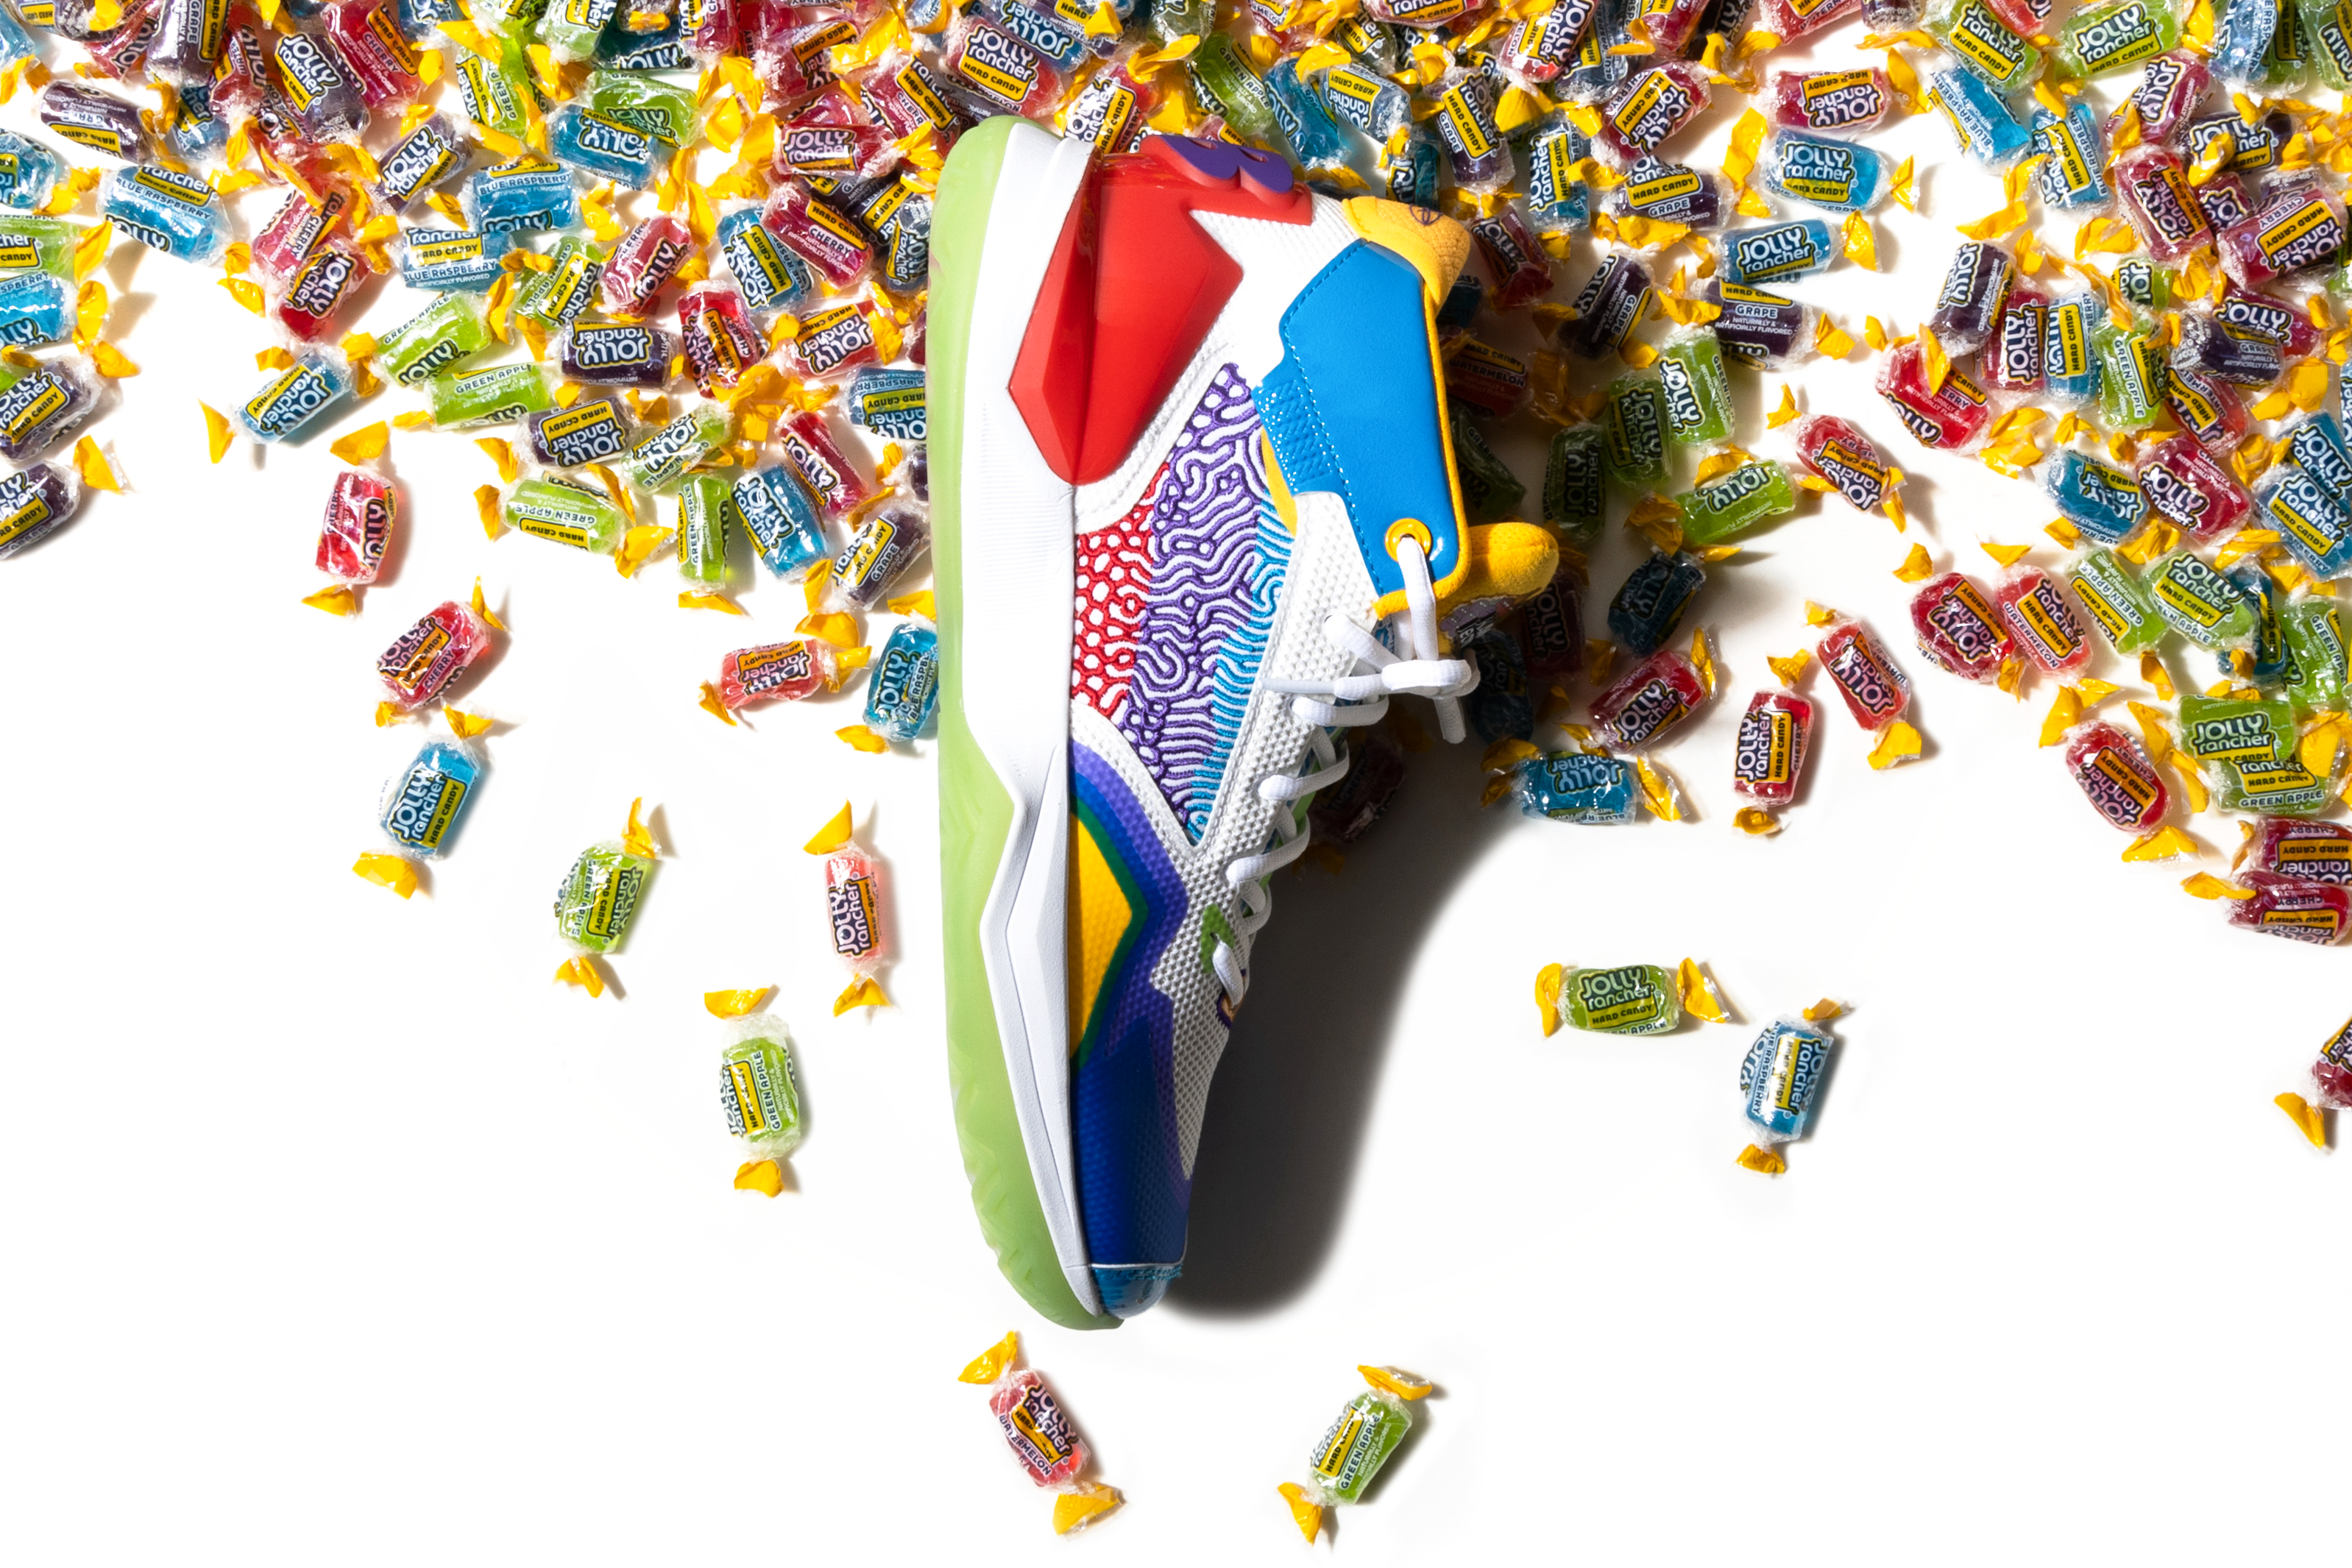 New Balance Jolly Rancher KAWHI signature shoes